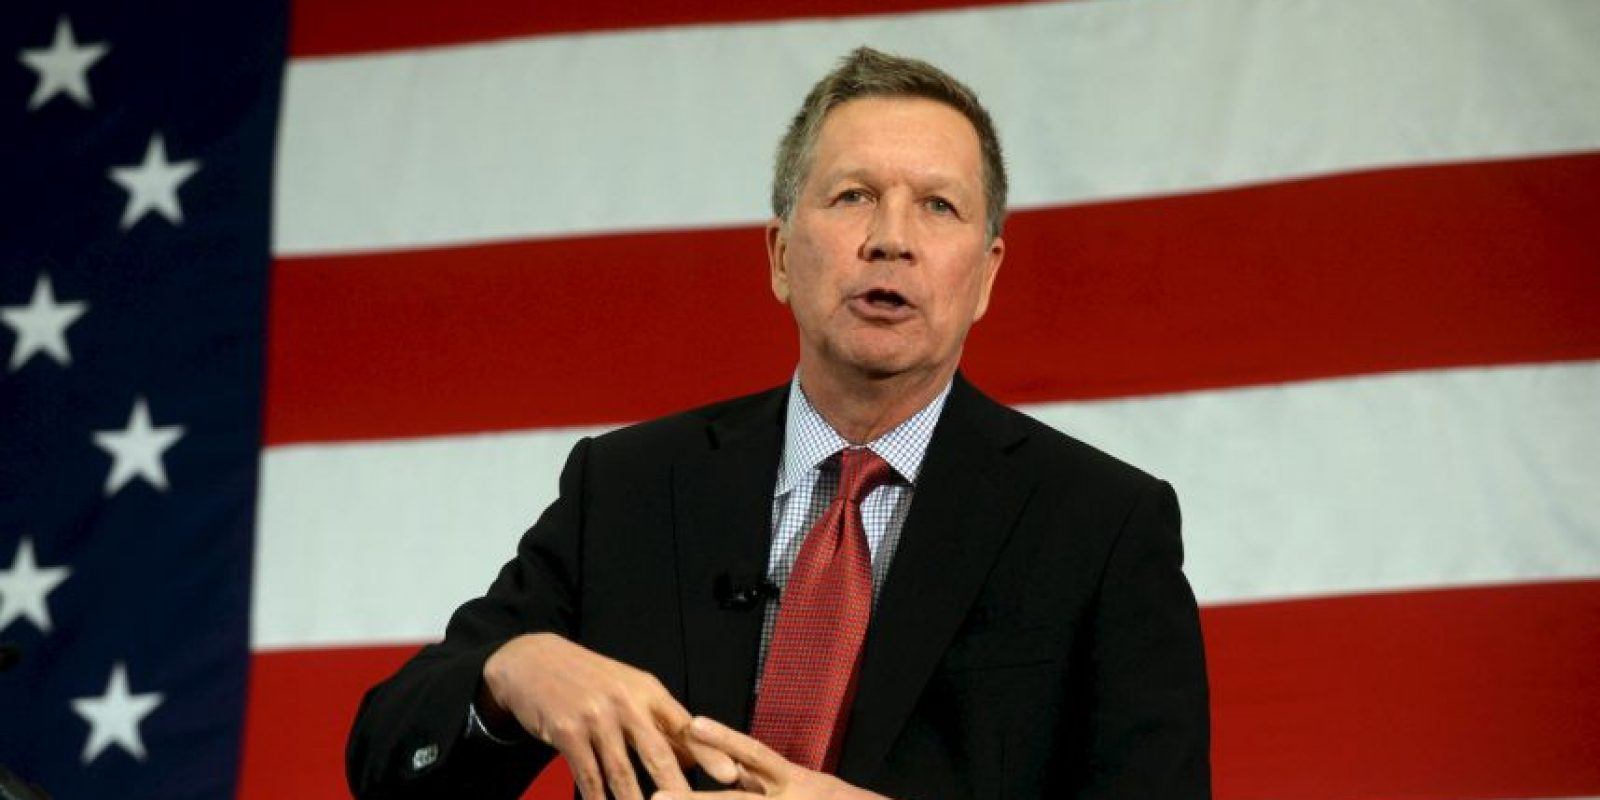 9. John Kasich Foto: Getty Images